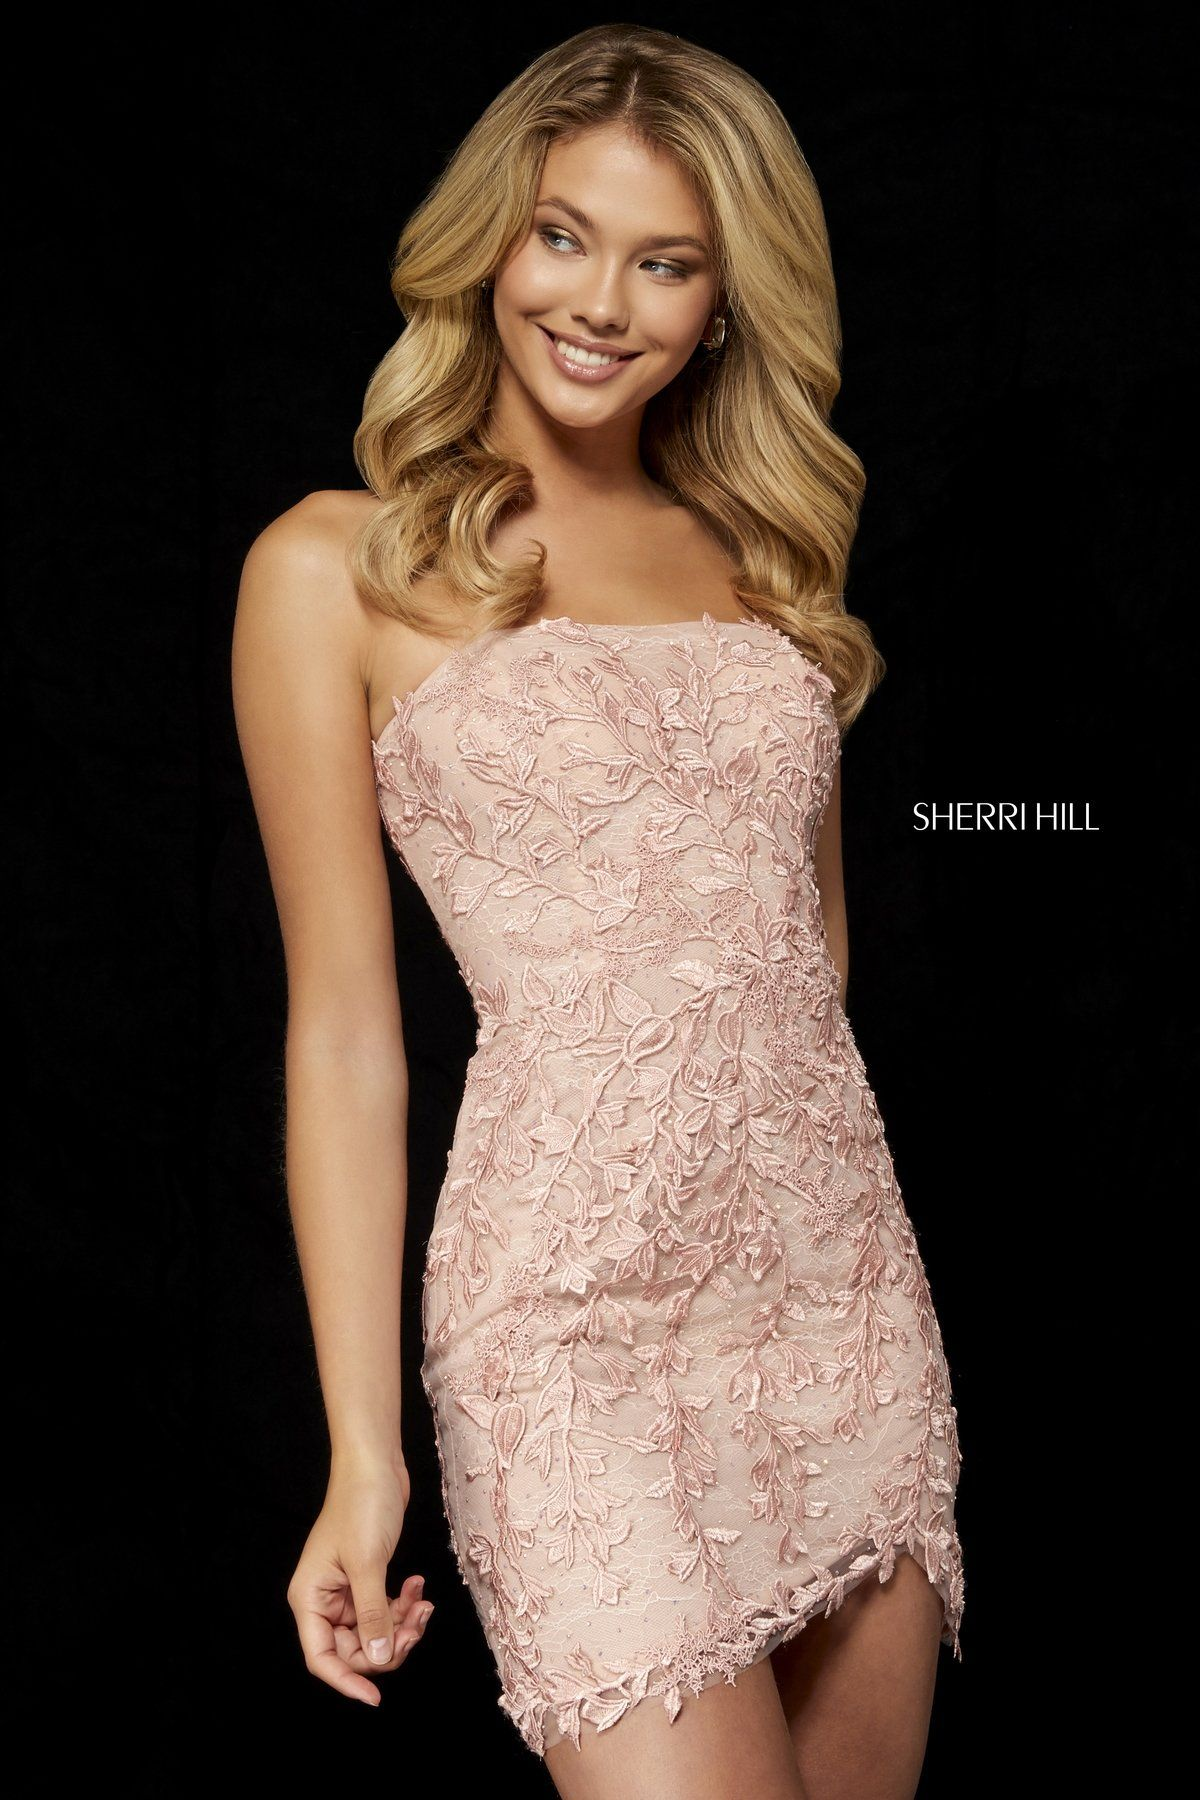 04feea68da1c The strapless neckline is complemented nicely by an asymmetrical short  skirt. The entire dress is covered with lace. This Sherri Hill dress ...